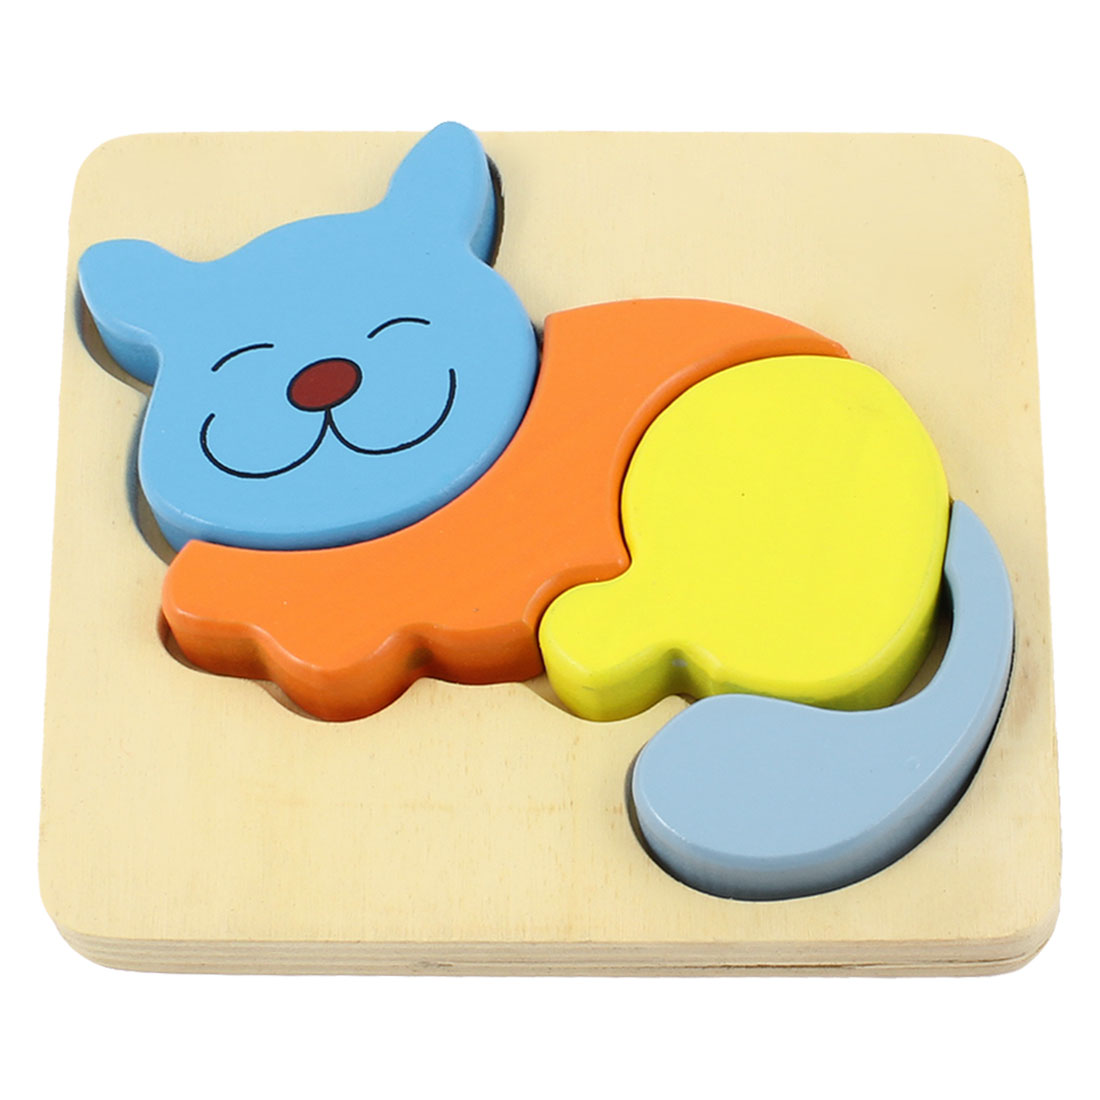 Colored Cat Model Educational Assemble Wooden Puzzle Toy for